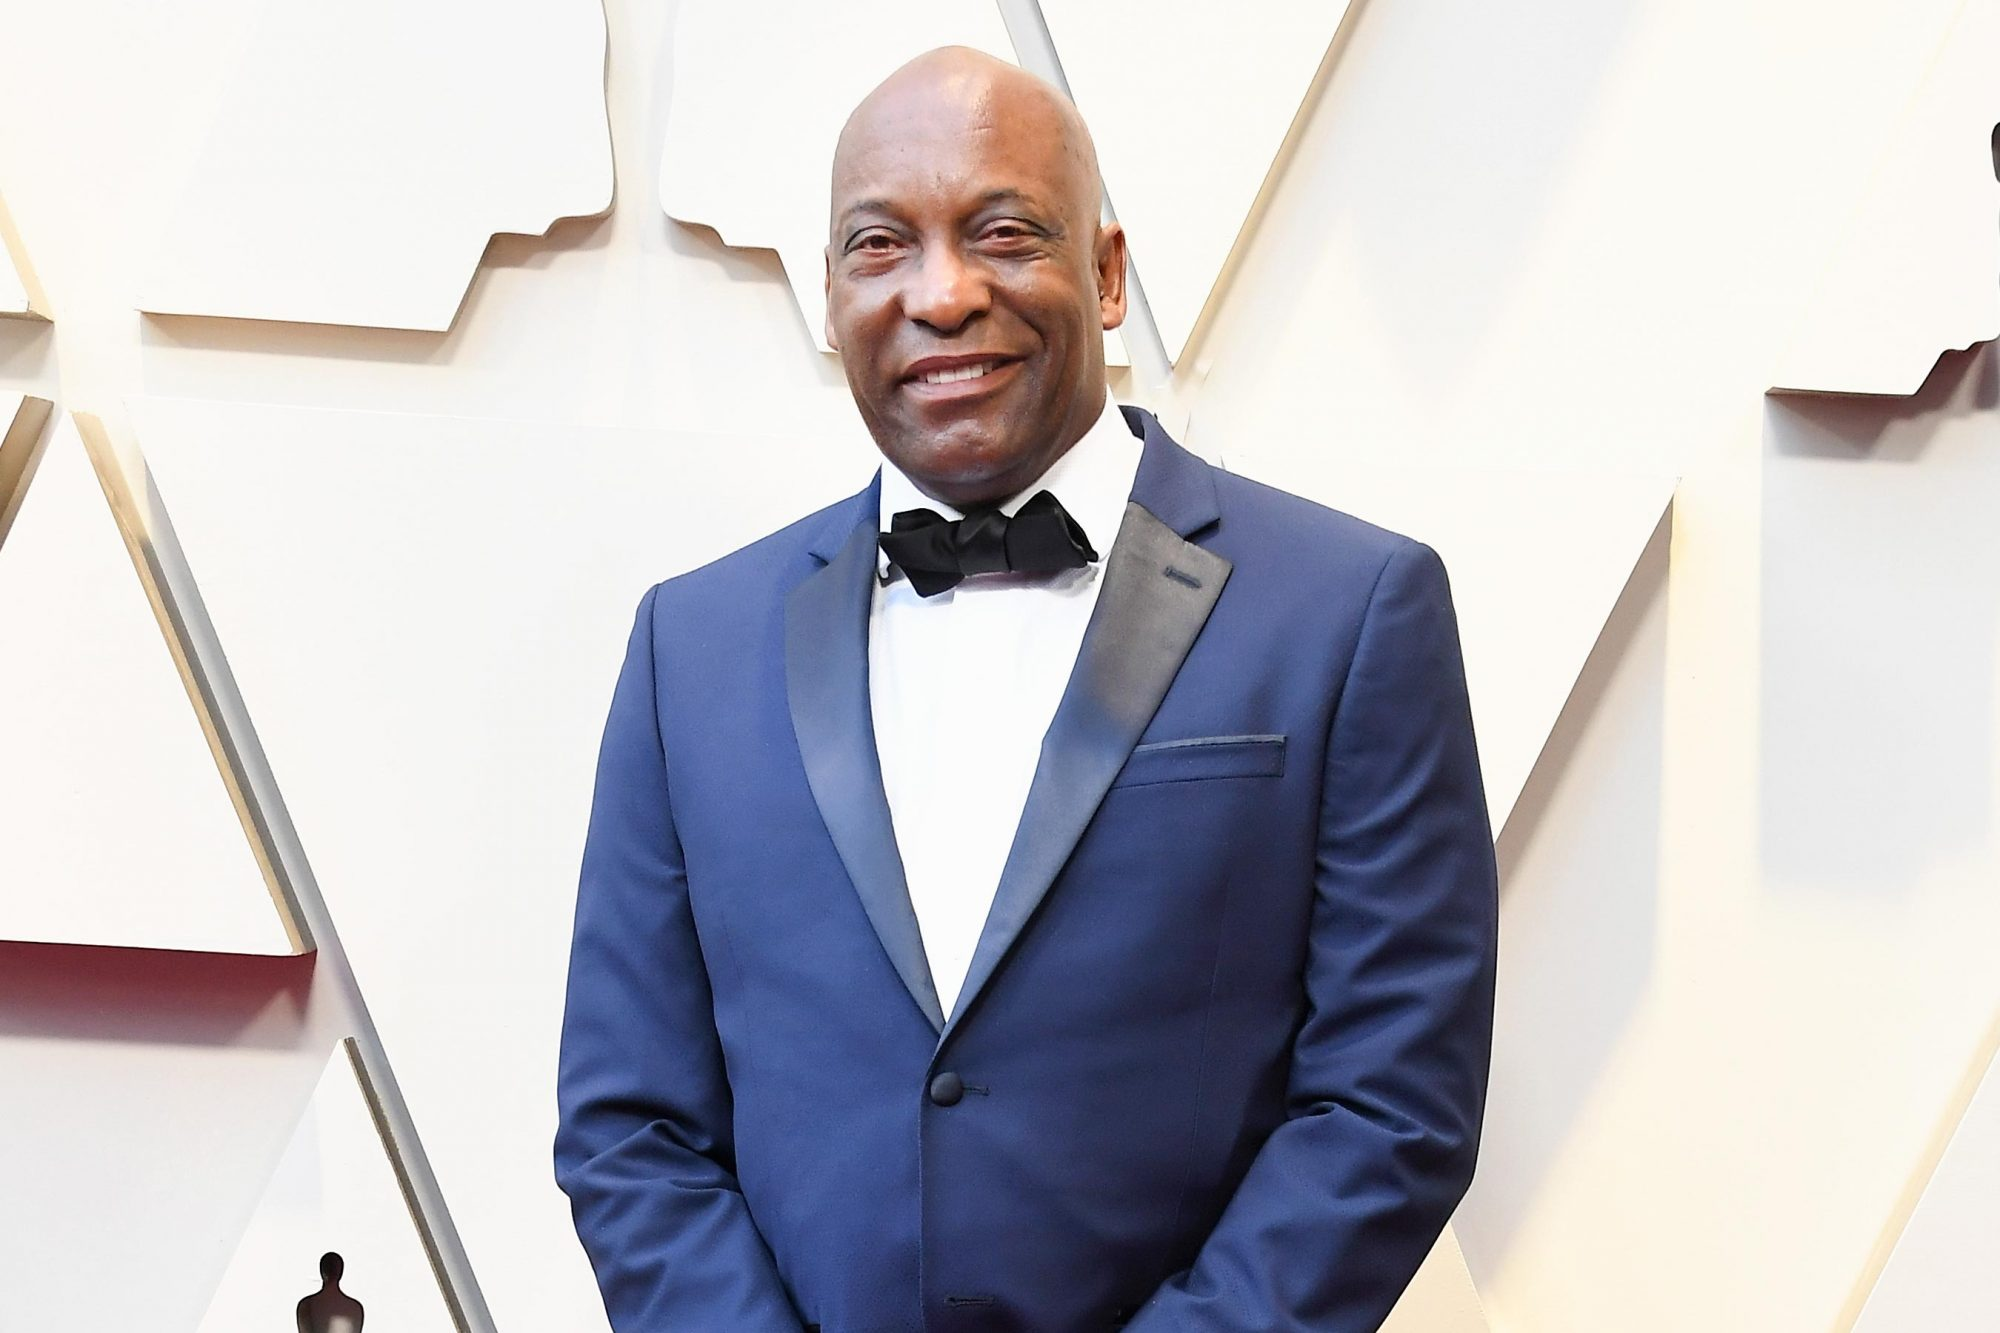 HOLLYWOOD, CA - FEBRUARY 24: John Singleton attends the 91st Annual Academy Awards at Hollywood and Highland on February 24, 2019 in Hollywood, California. (Photo by Steve Granitz/WireImage)